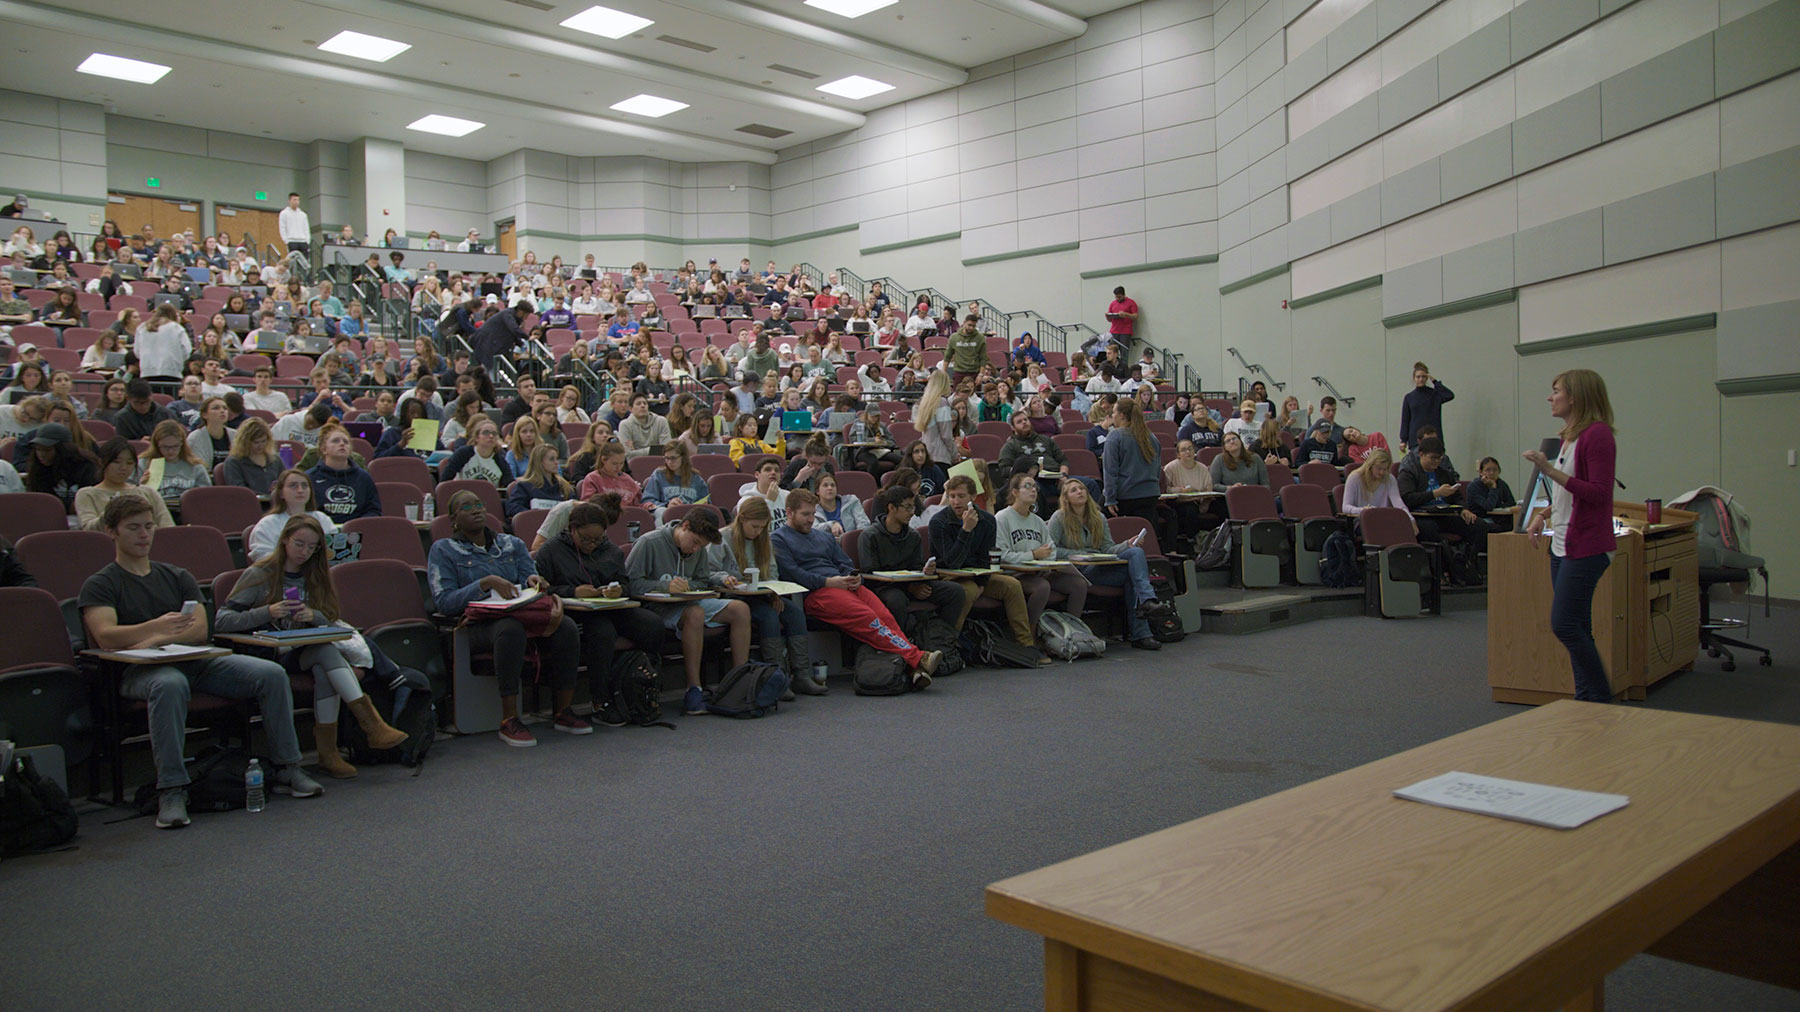 Students listening to a Professor in an auditorium